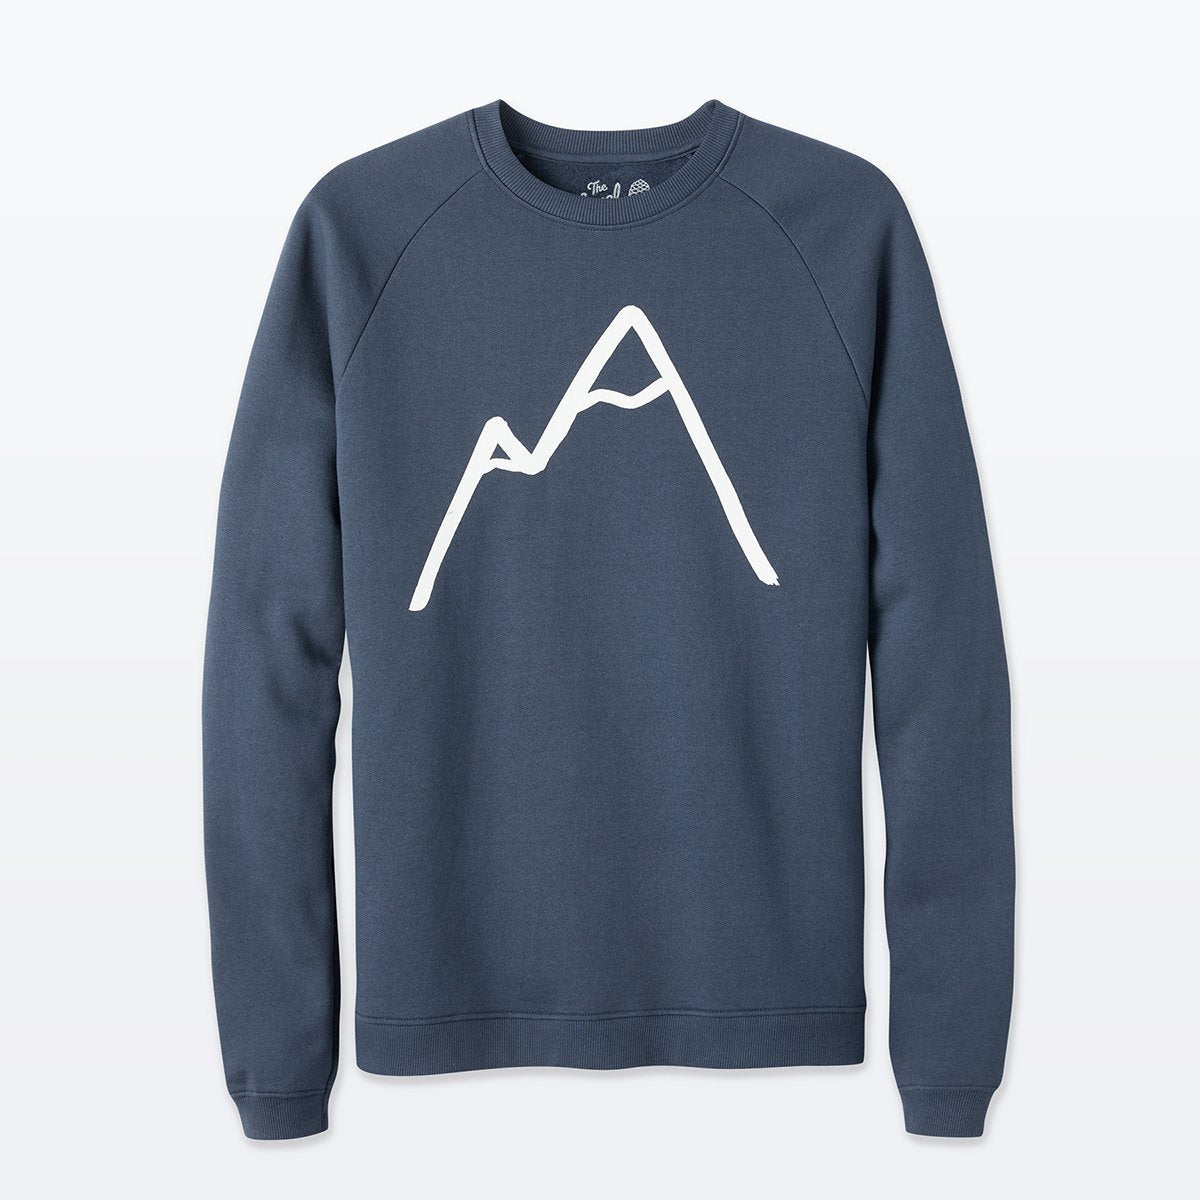 Simple Mountain Sweatshirt